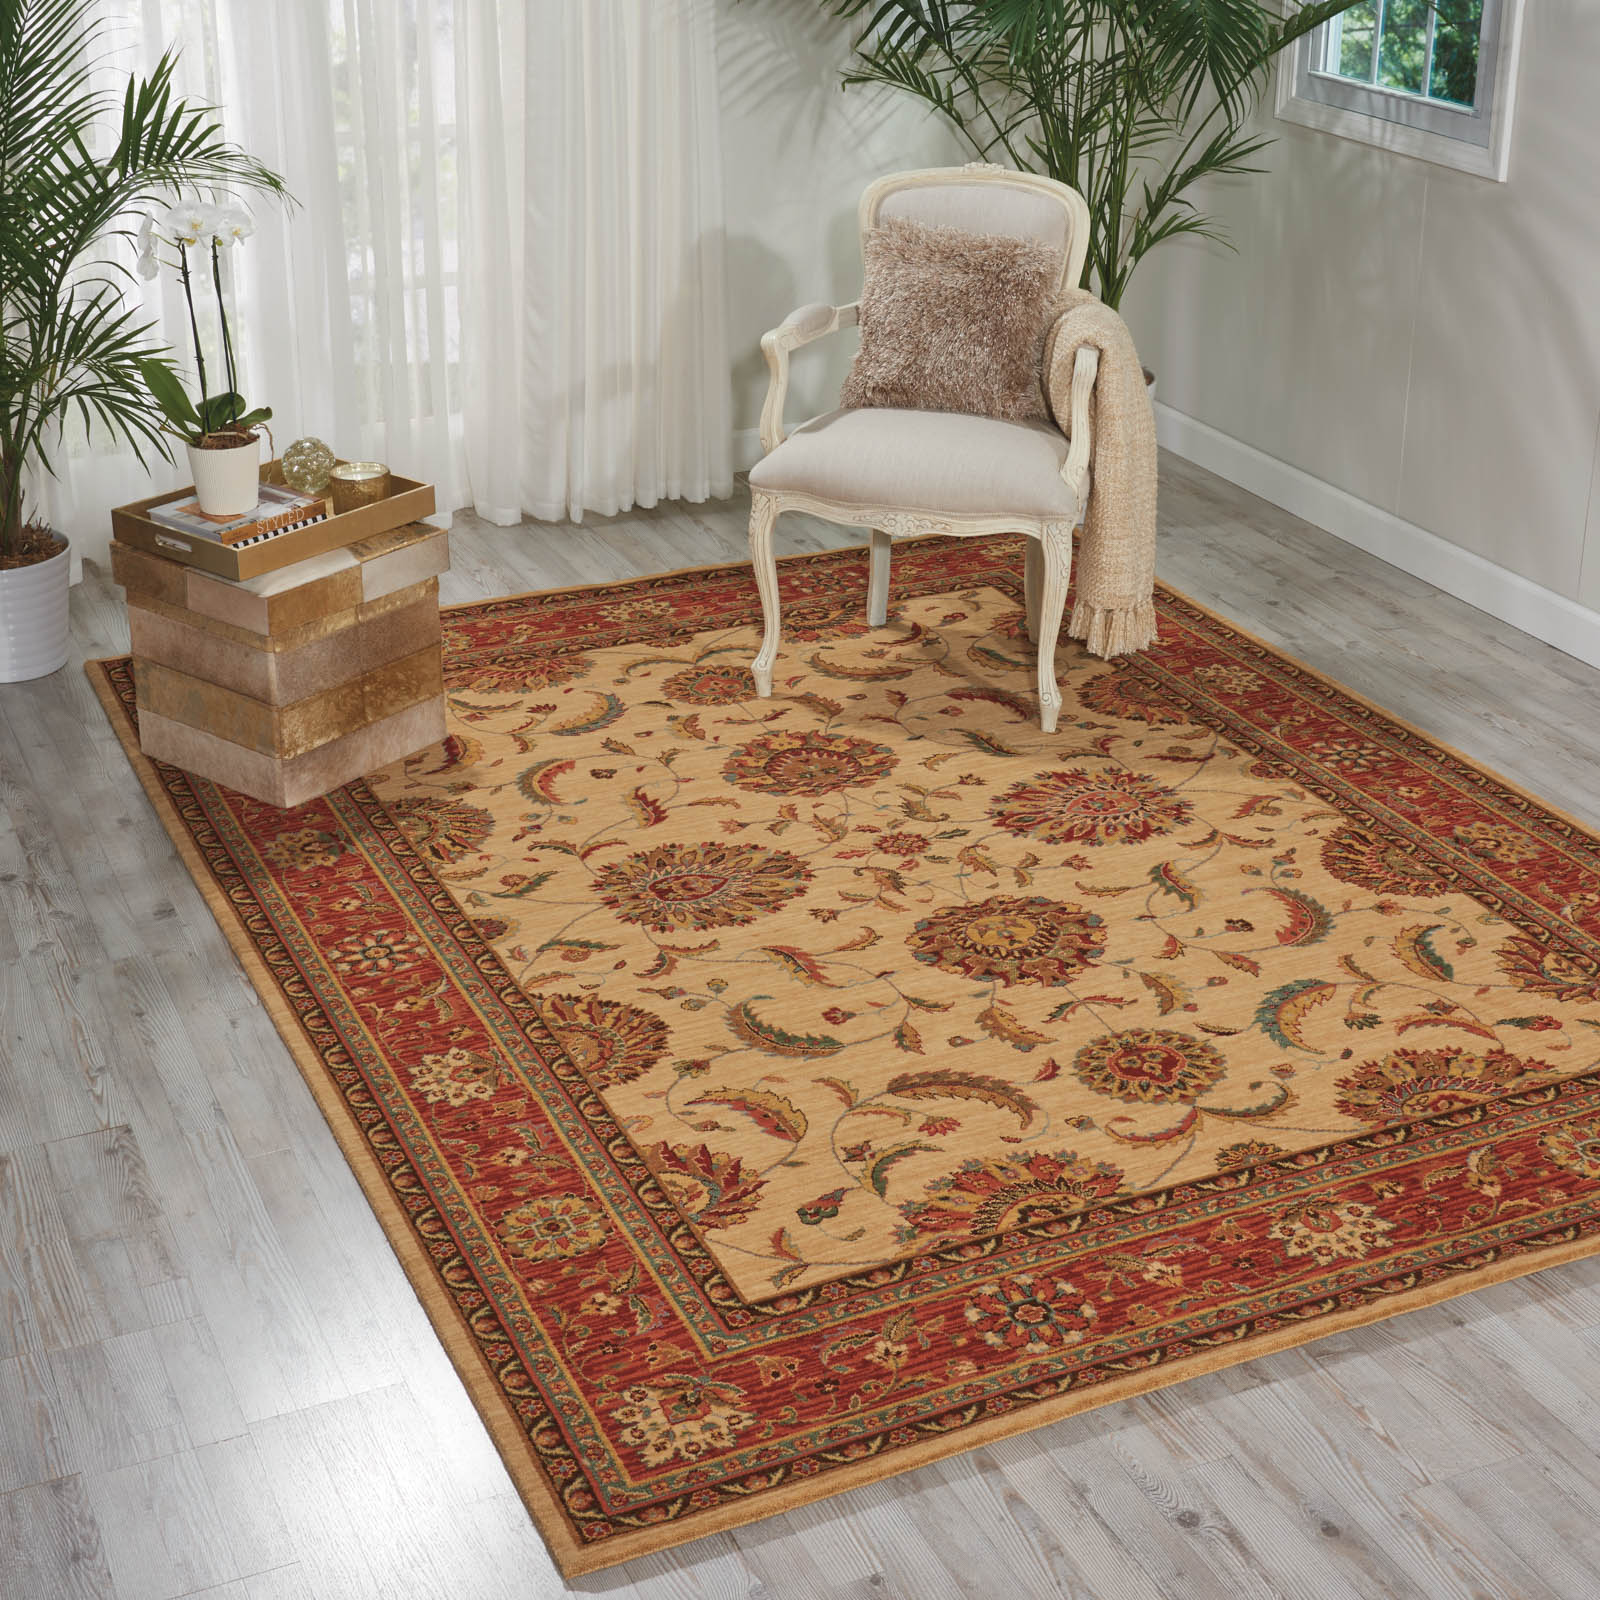 Living Treasure Rugs by Nourison LI04 in Ivory Red